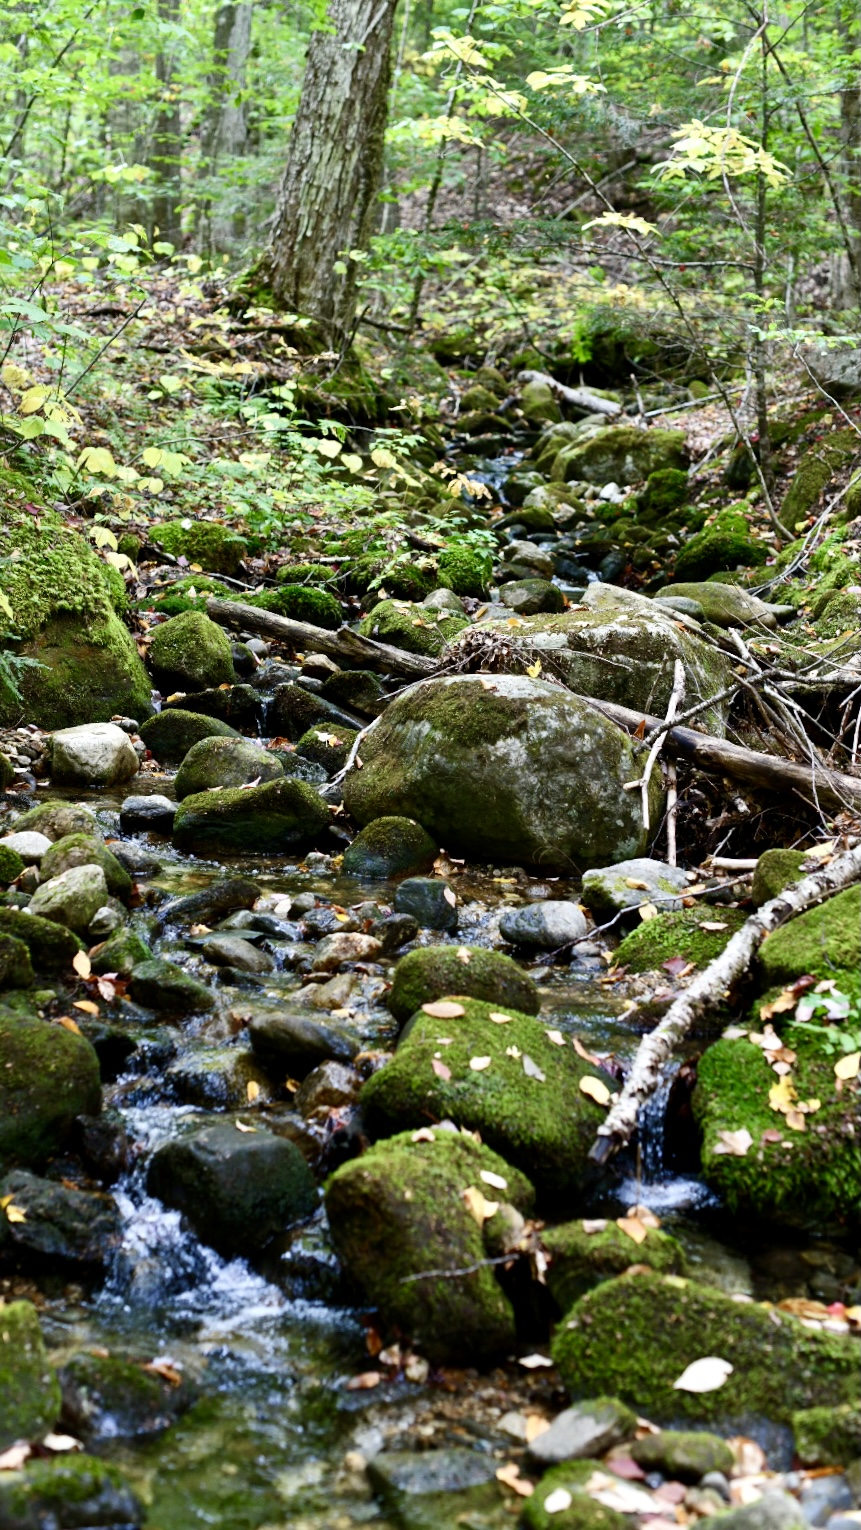 Mossy rocks in a woodland stream. 2021. Taryn Okesson. Digital Photography. White Mountain National Forest, New Hampshire.